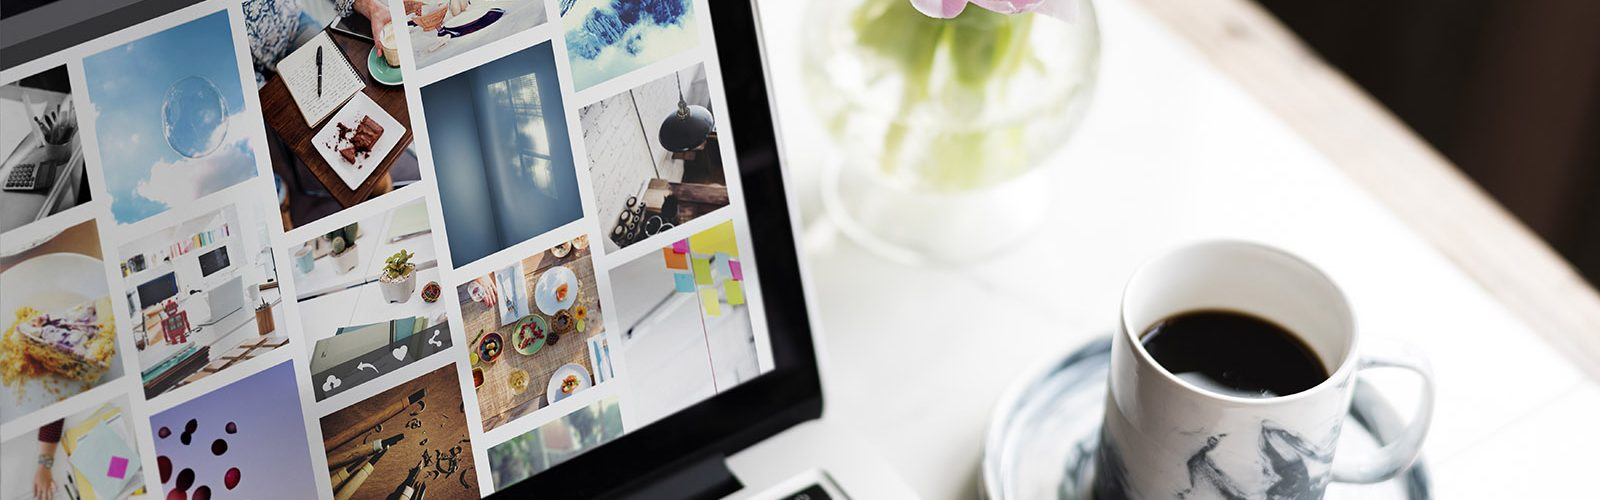 Stock Photos, Illustrations, Icons, and Fonts for Businesses on a Budget